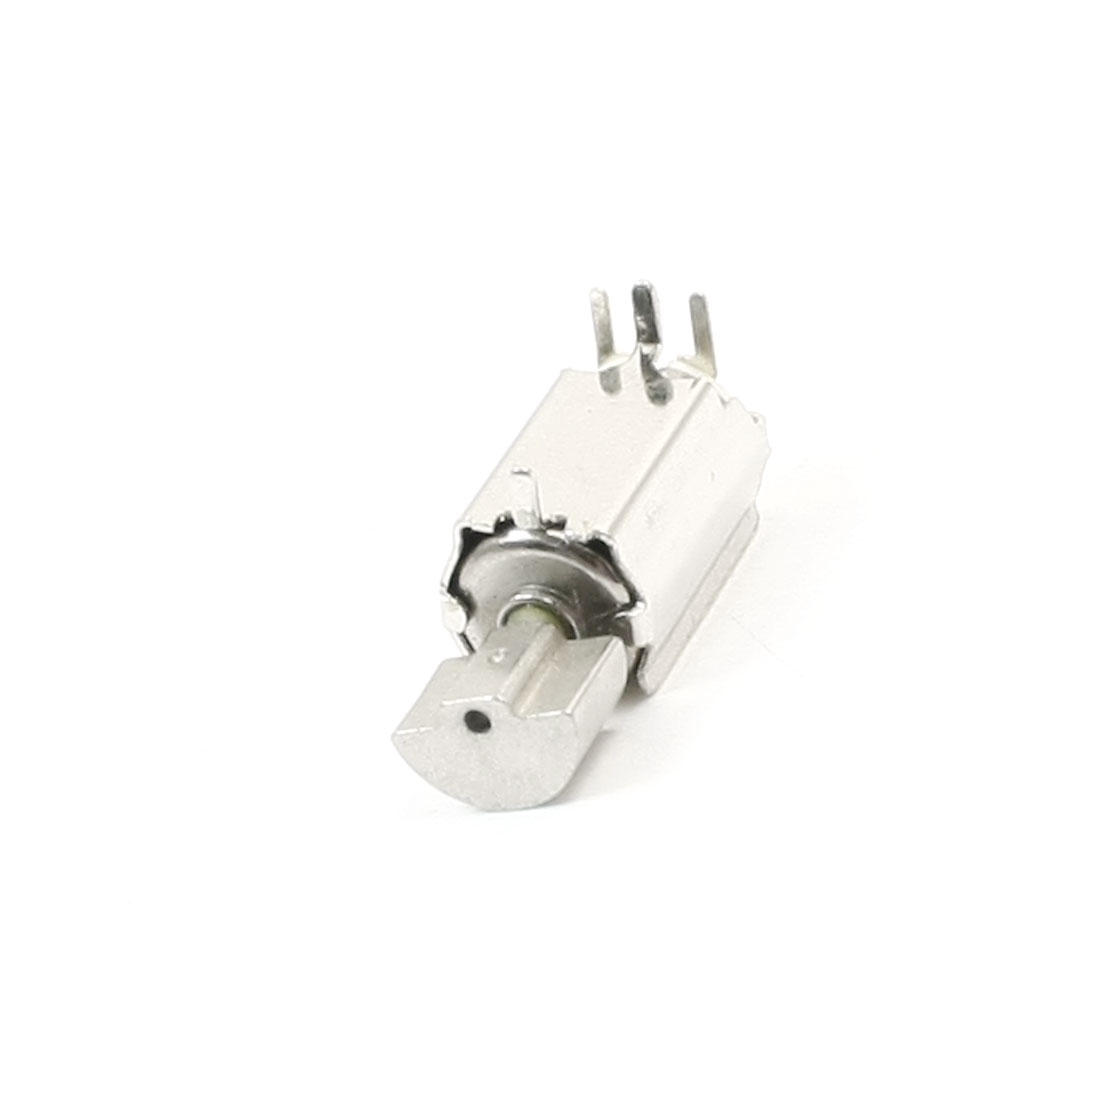 10000RPM-Speed-DC-3V-6mm-x-10mm-Micro-Coreless-Vibration-Motor